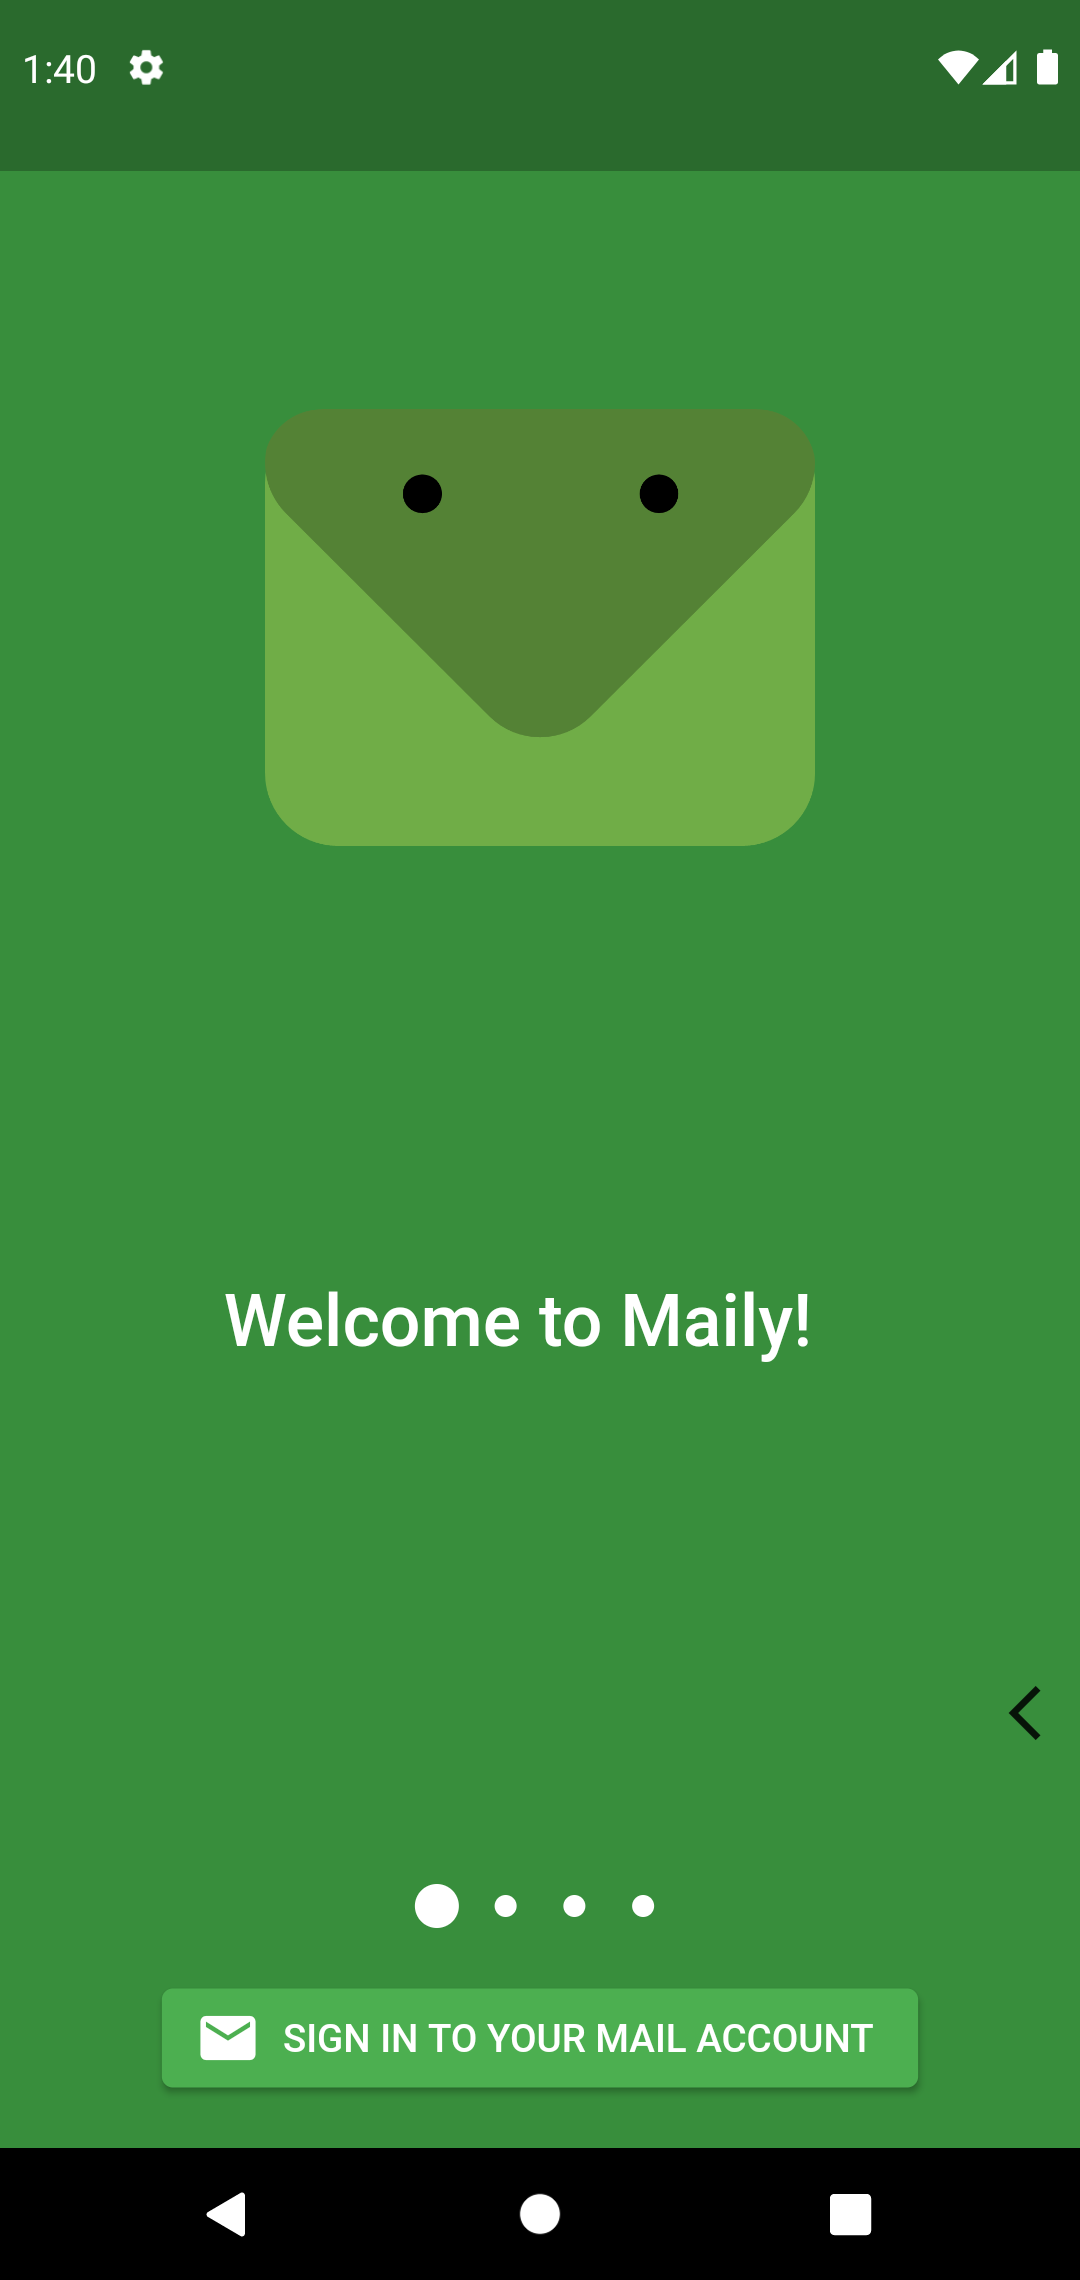 A Mail app for iOS and Android build in Flutter